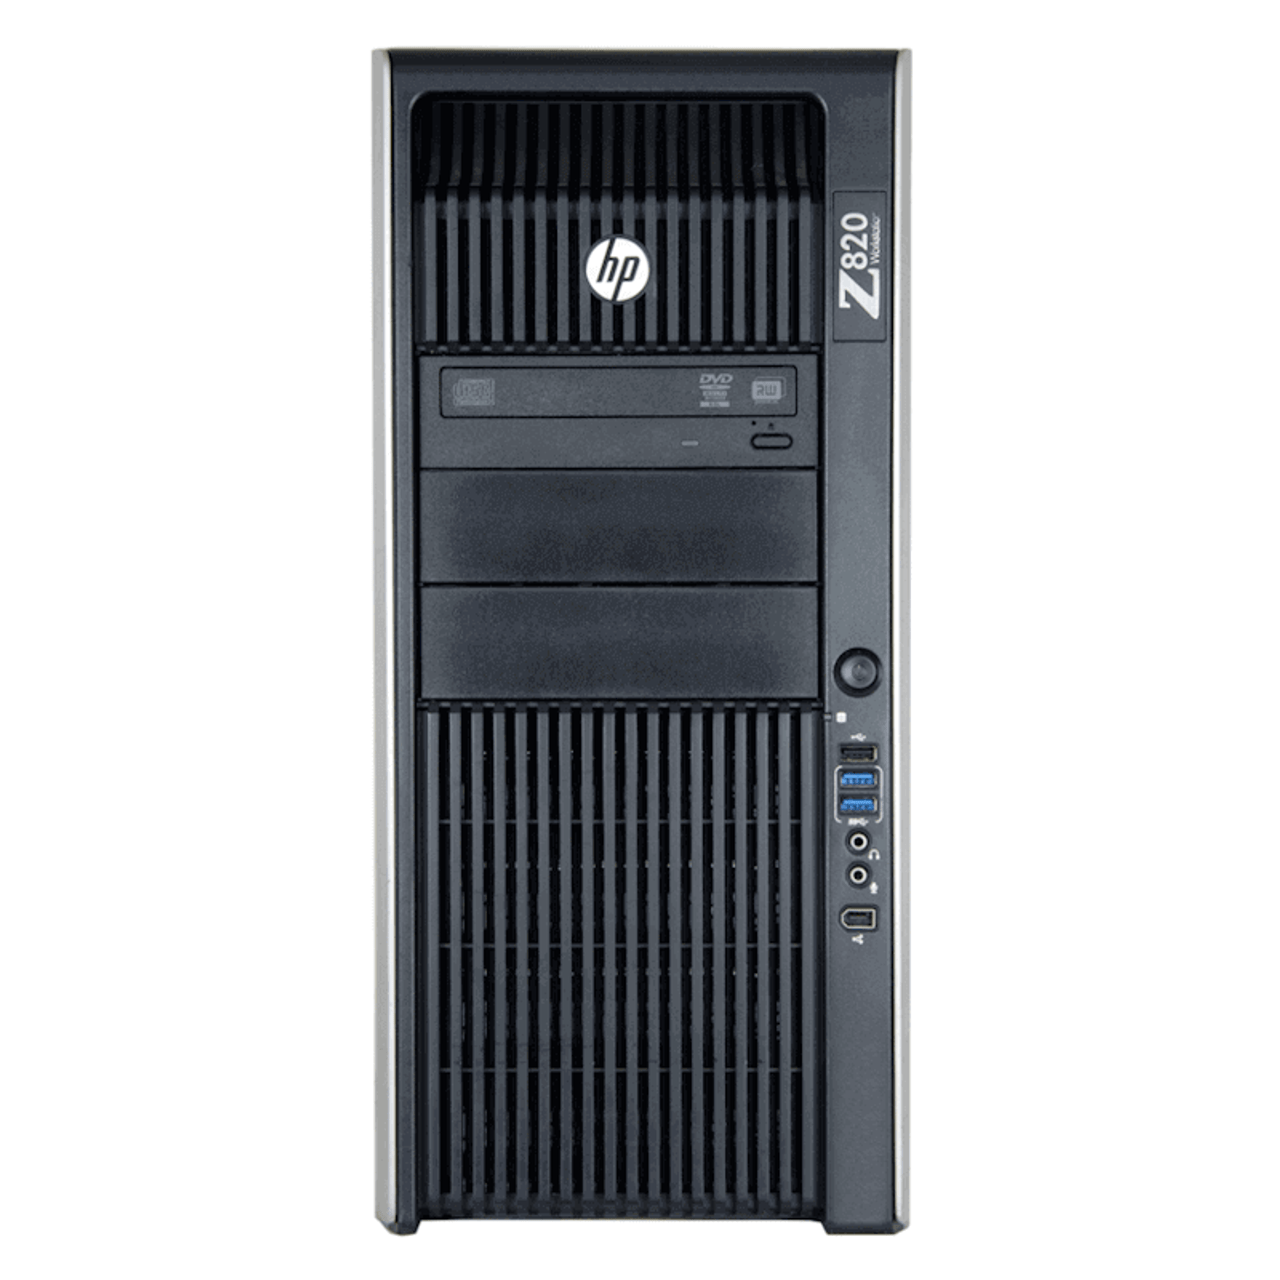 HP Z820 Mid-Tower Workstation - Configure to Order